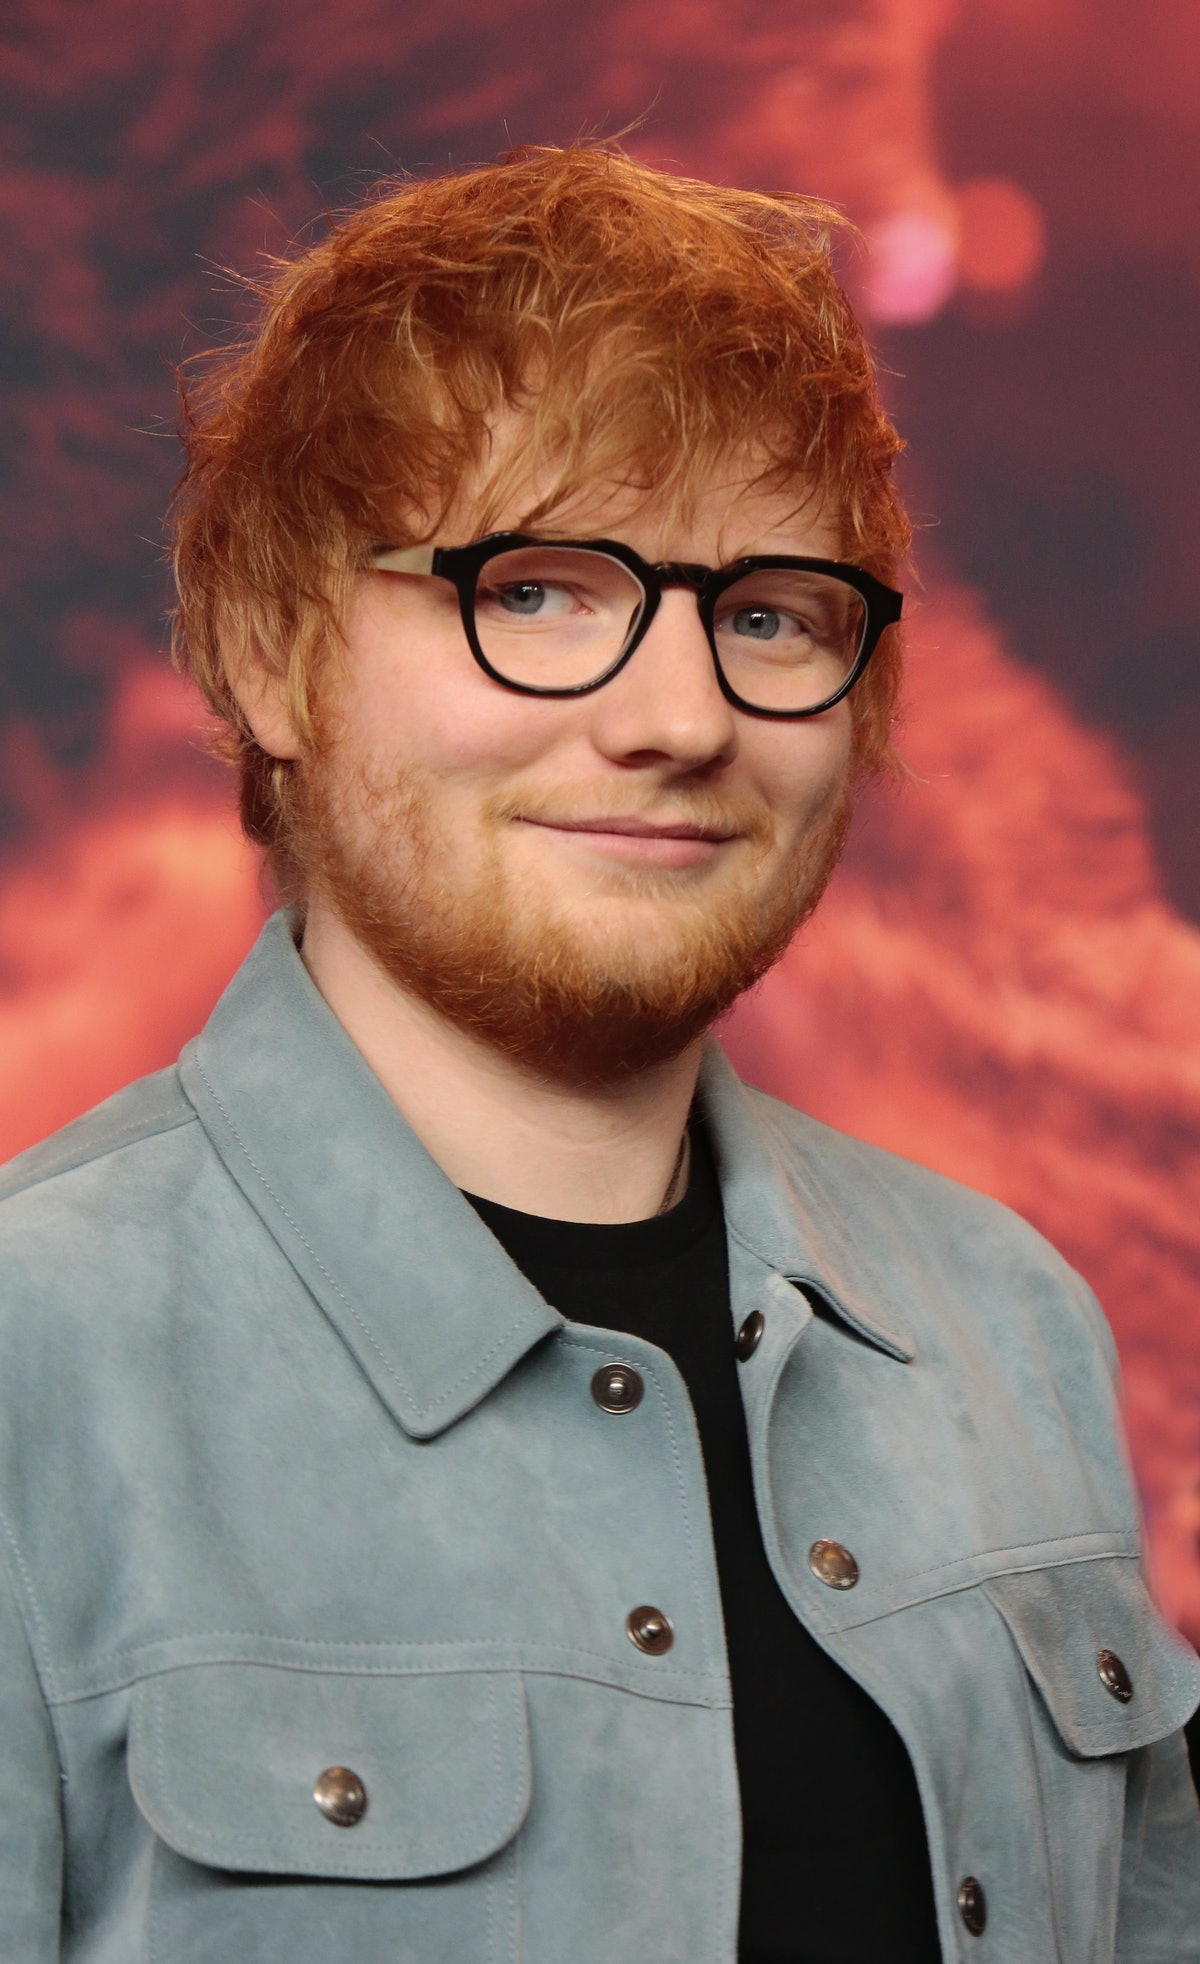 BERLIN, GERMANY - FEBRUARY 23: Singer Ed Sheeran poses at the 'Songwriter' press conference during t...